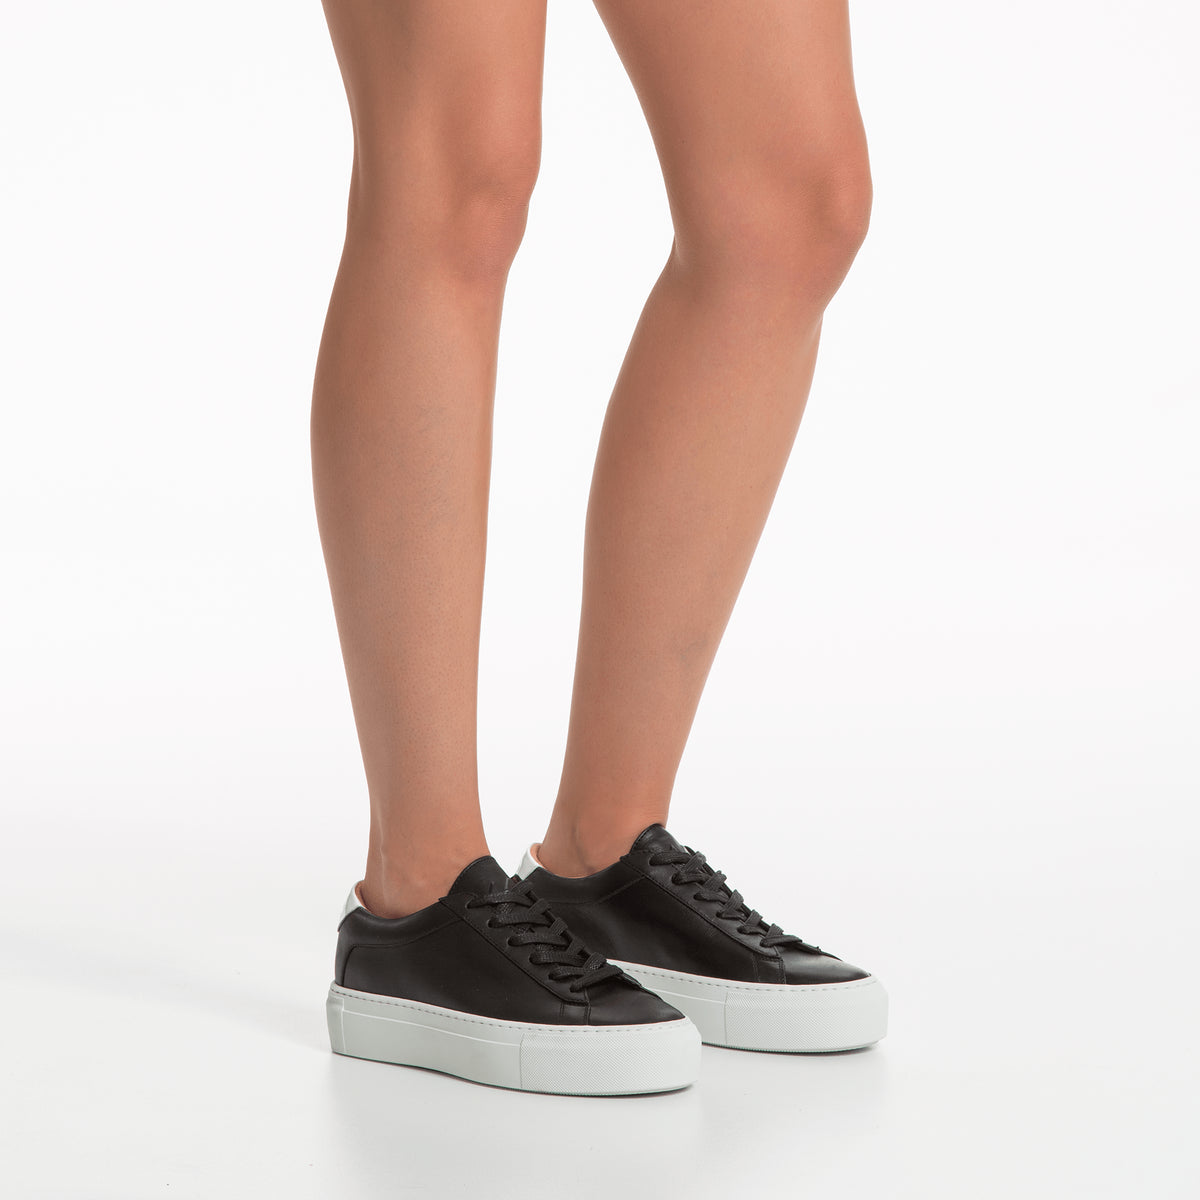 white and black platform sneakers